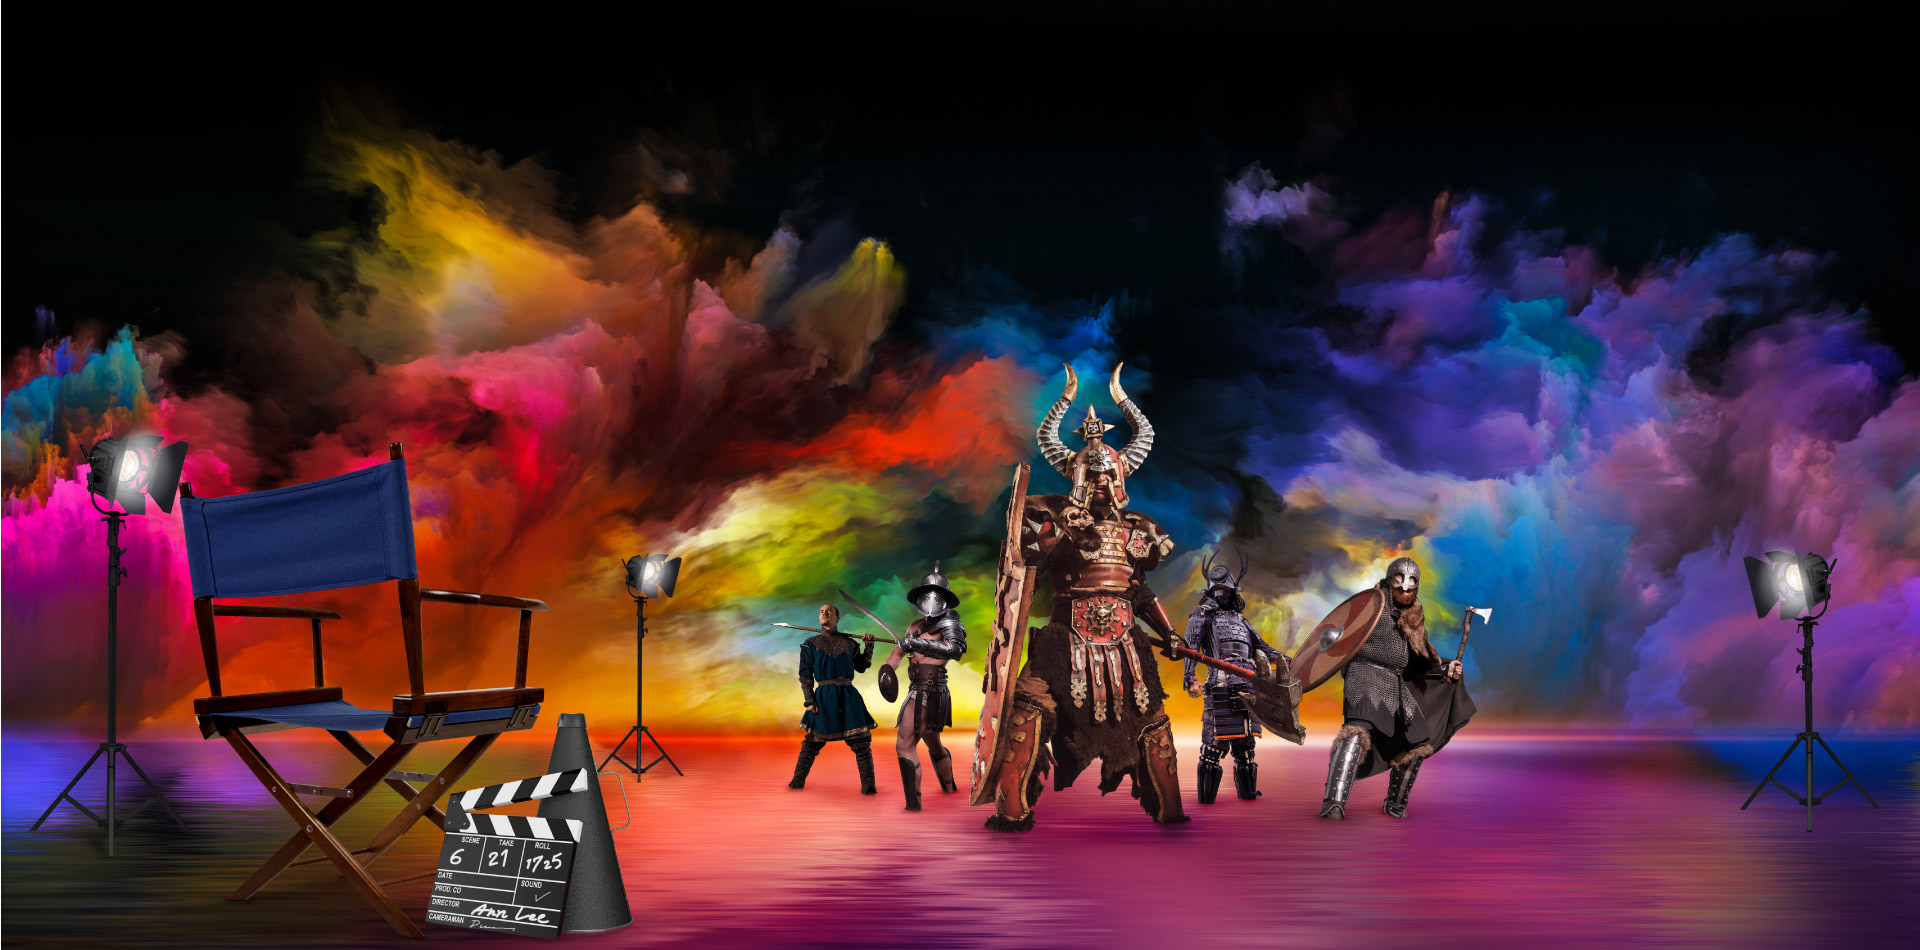 CinematicColor for Colors as Directors Envisioned